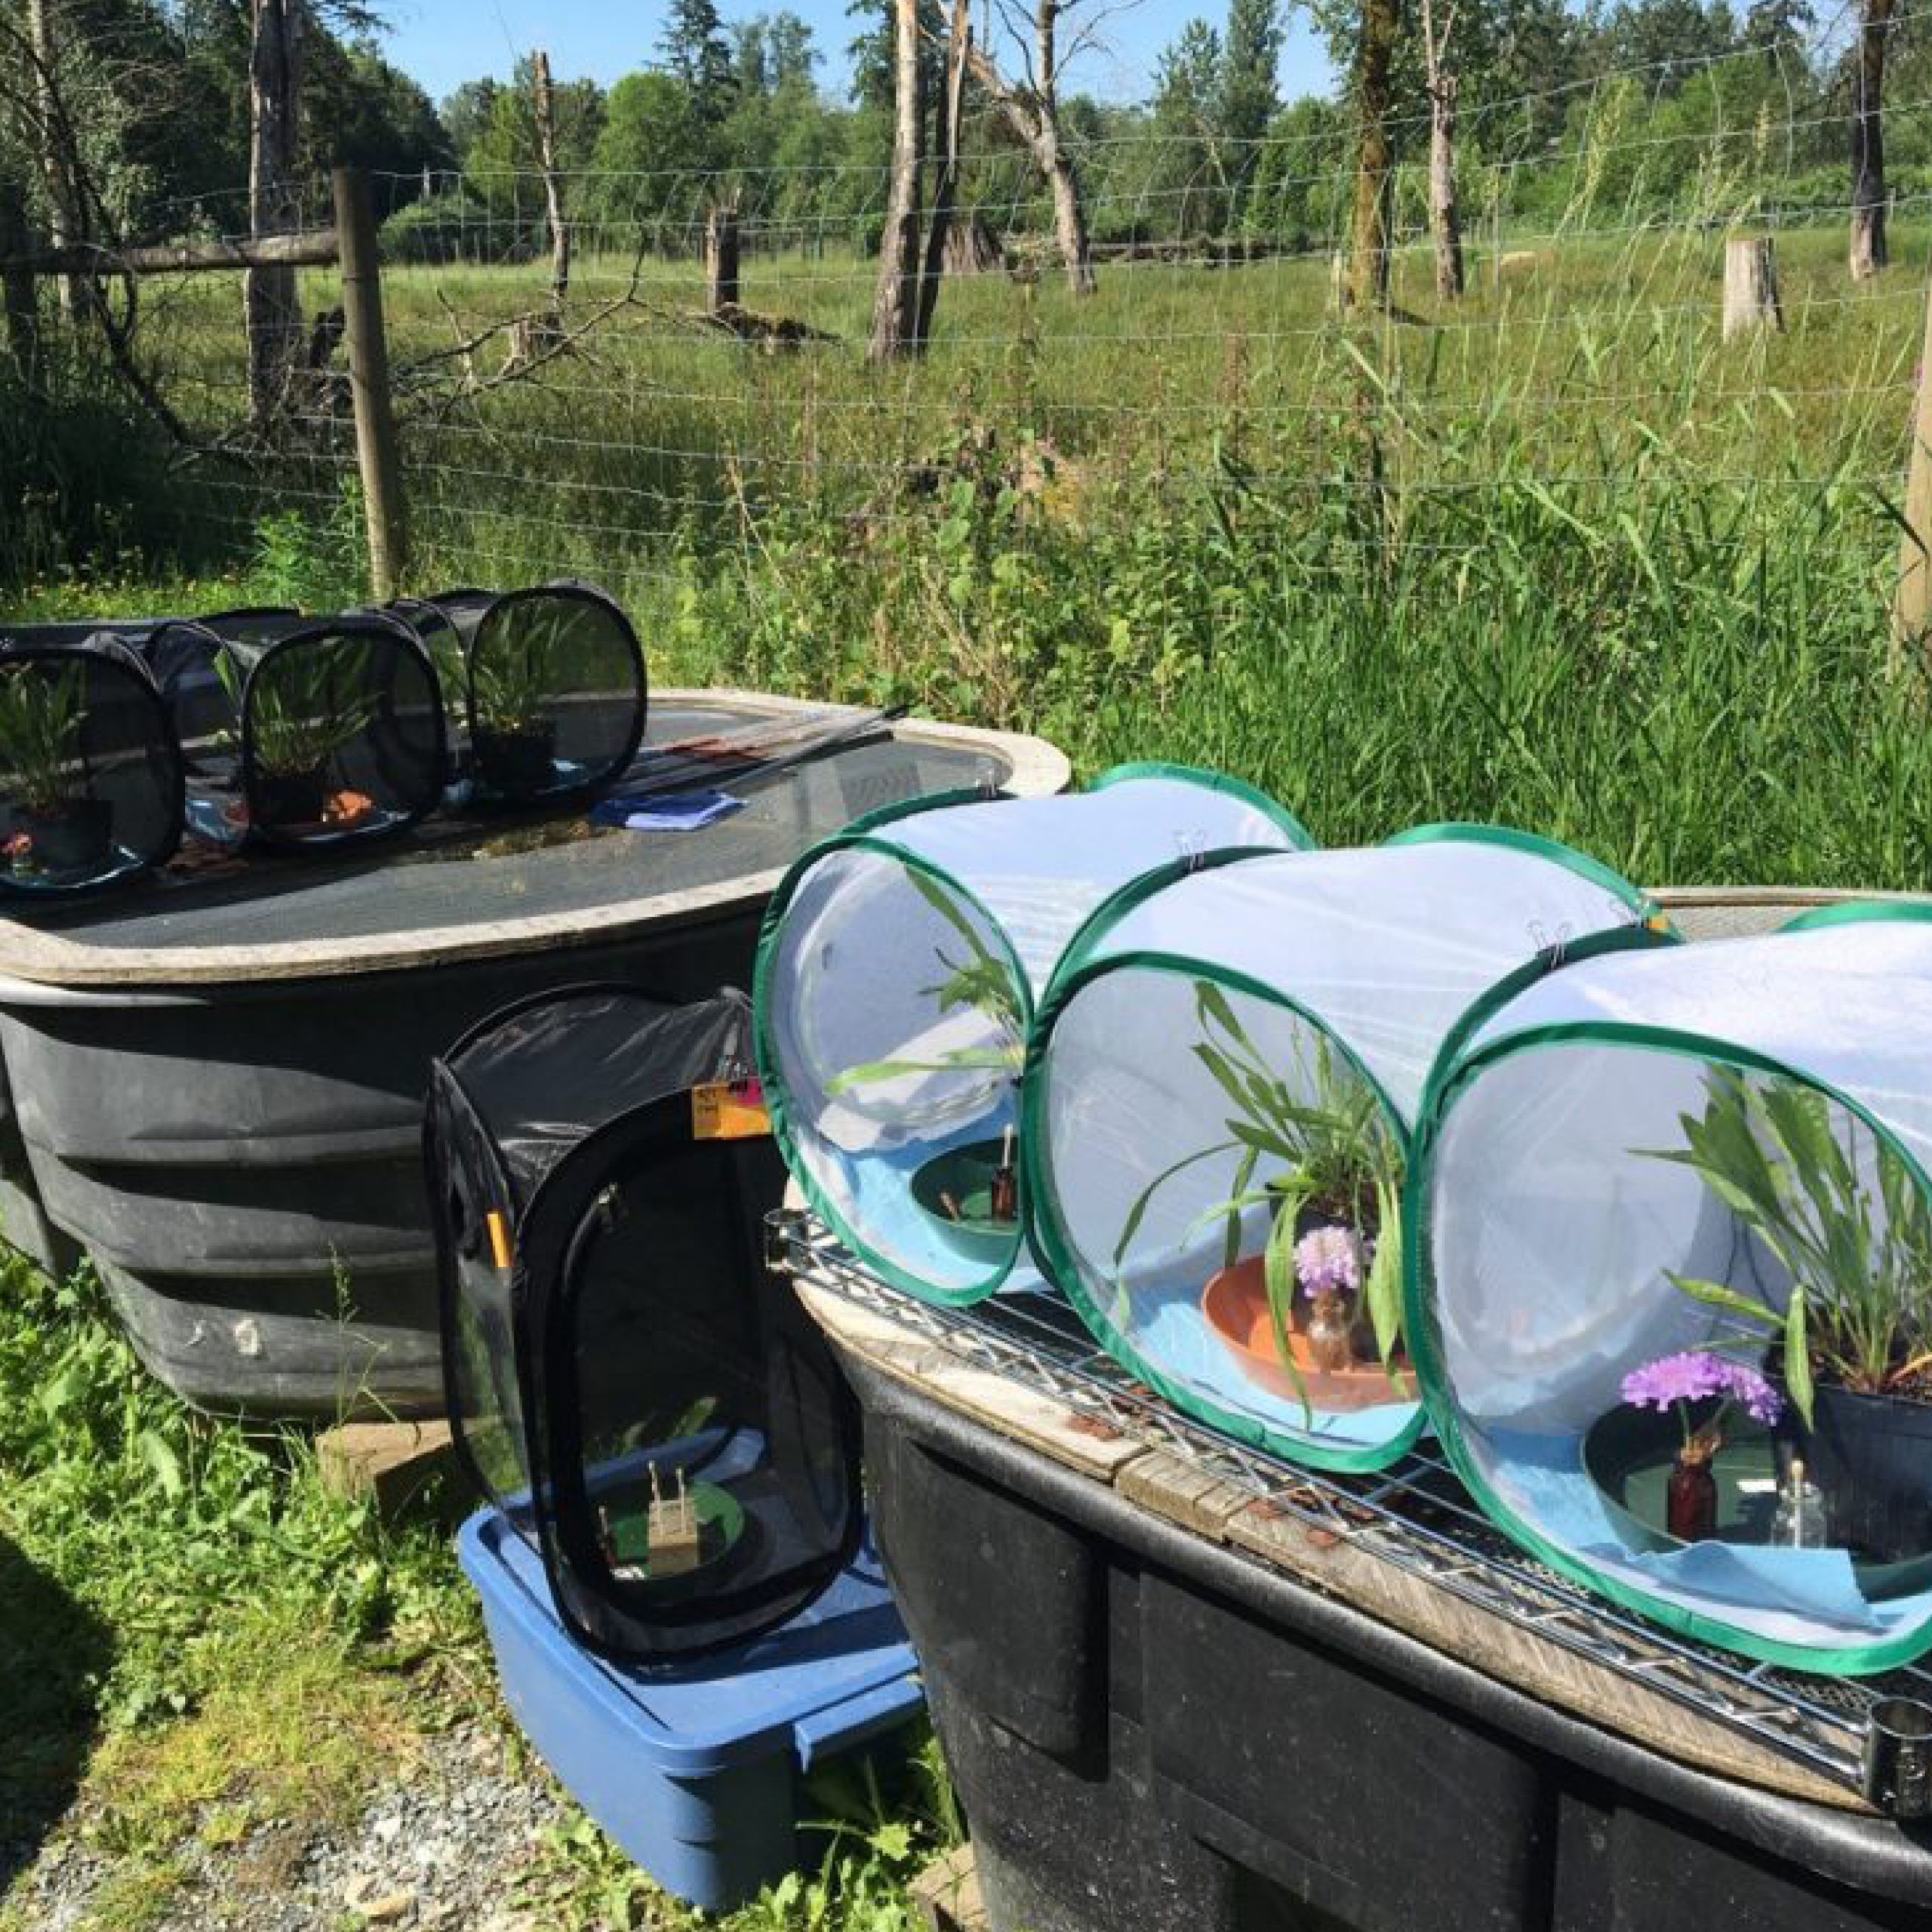 Temporary breeding enclosures are used for Taylor's checkerspot butterflies in BC so that males and females can mate and produce eggs for the conservation breeding program.